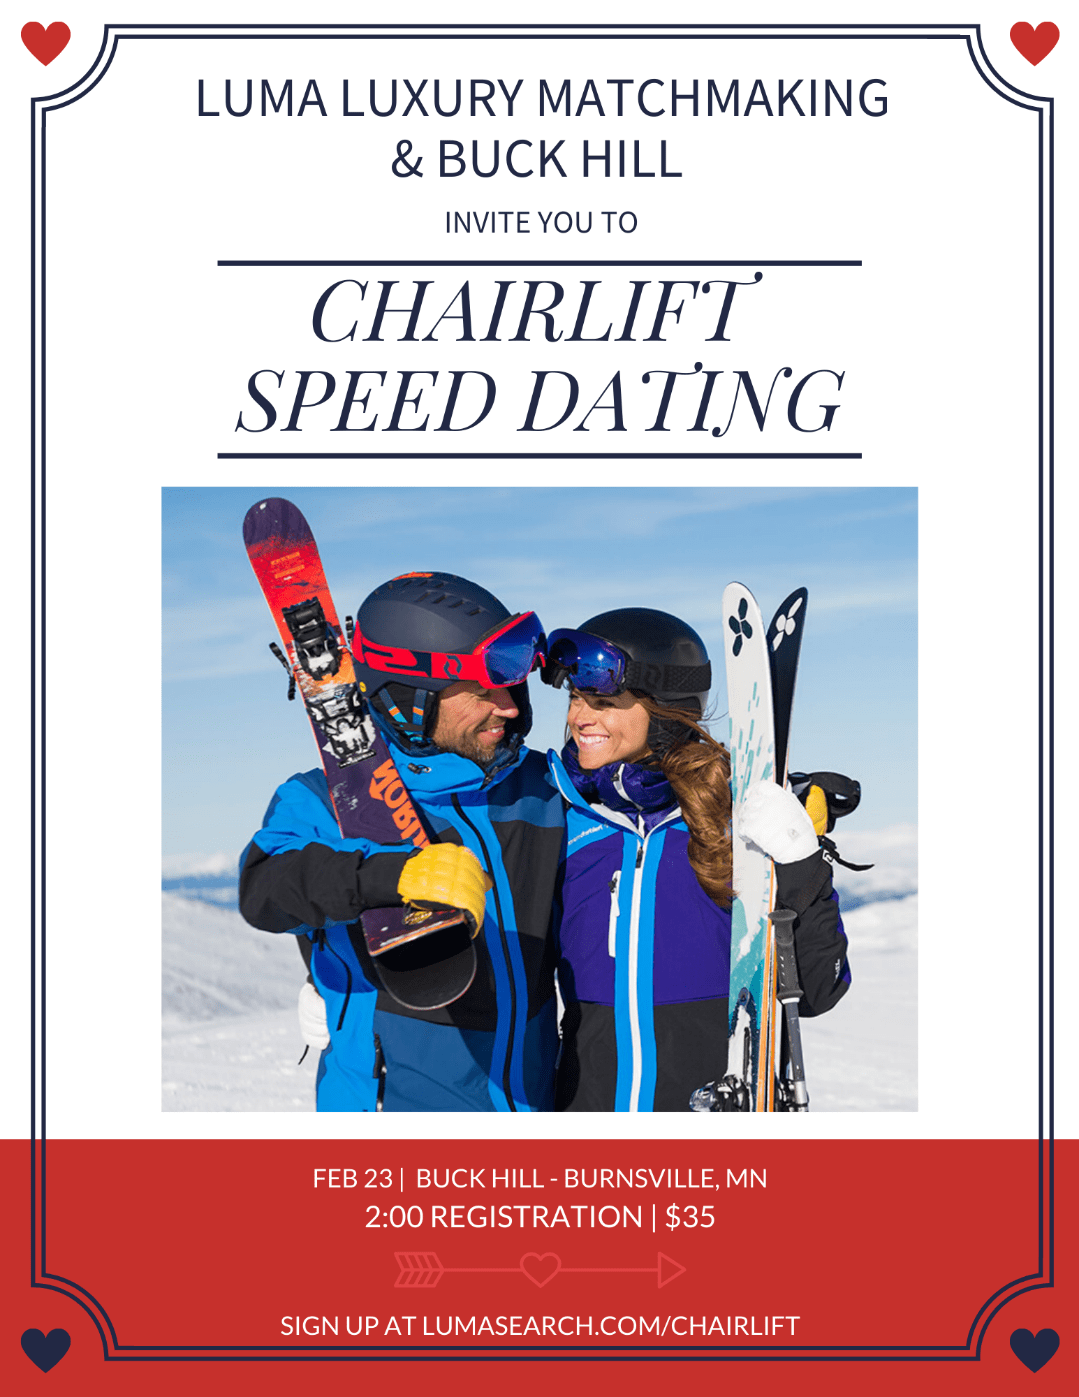 Chairlift Speed Dating Buck Hill